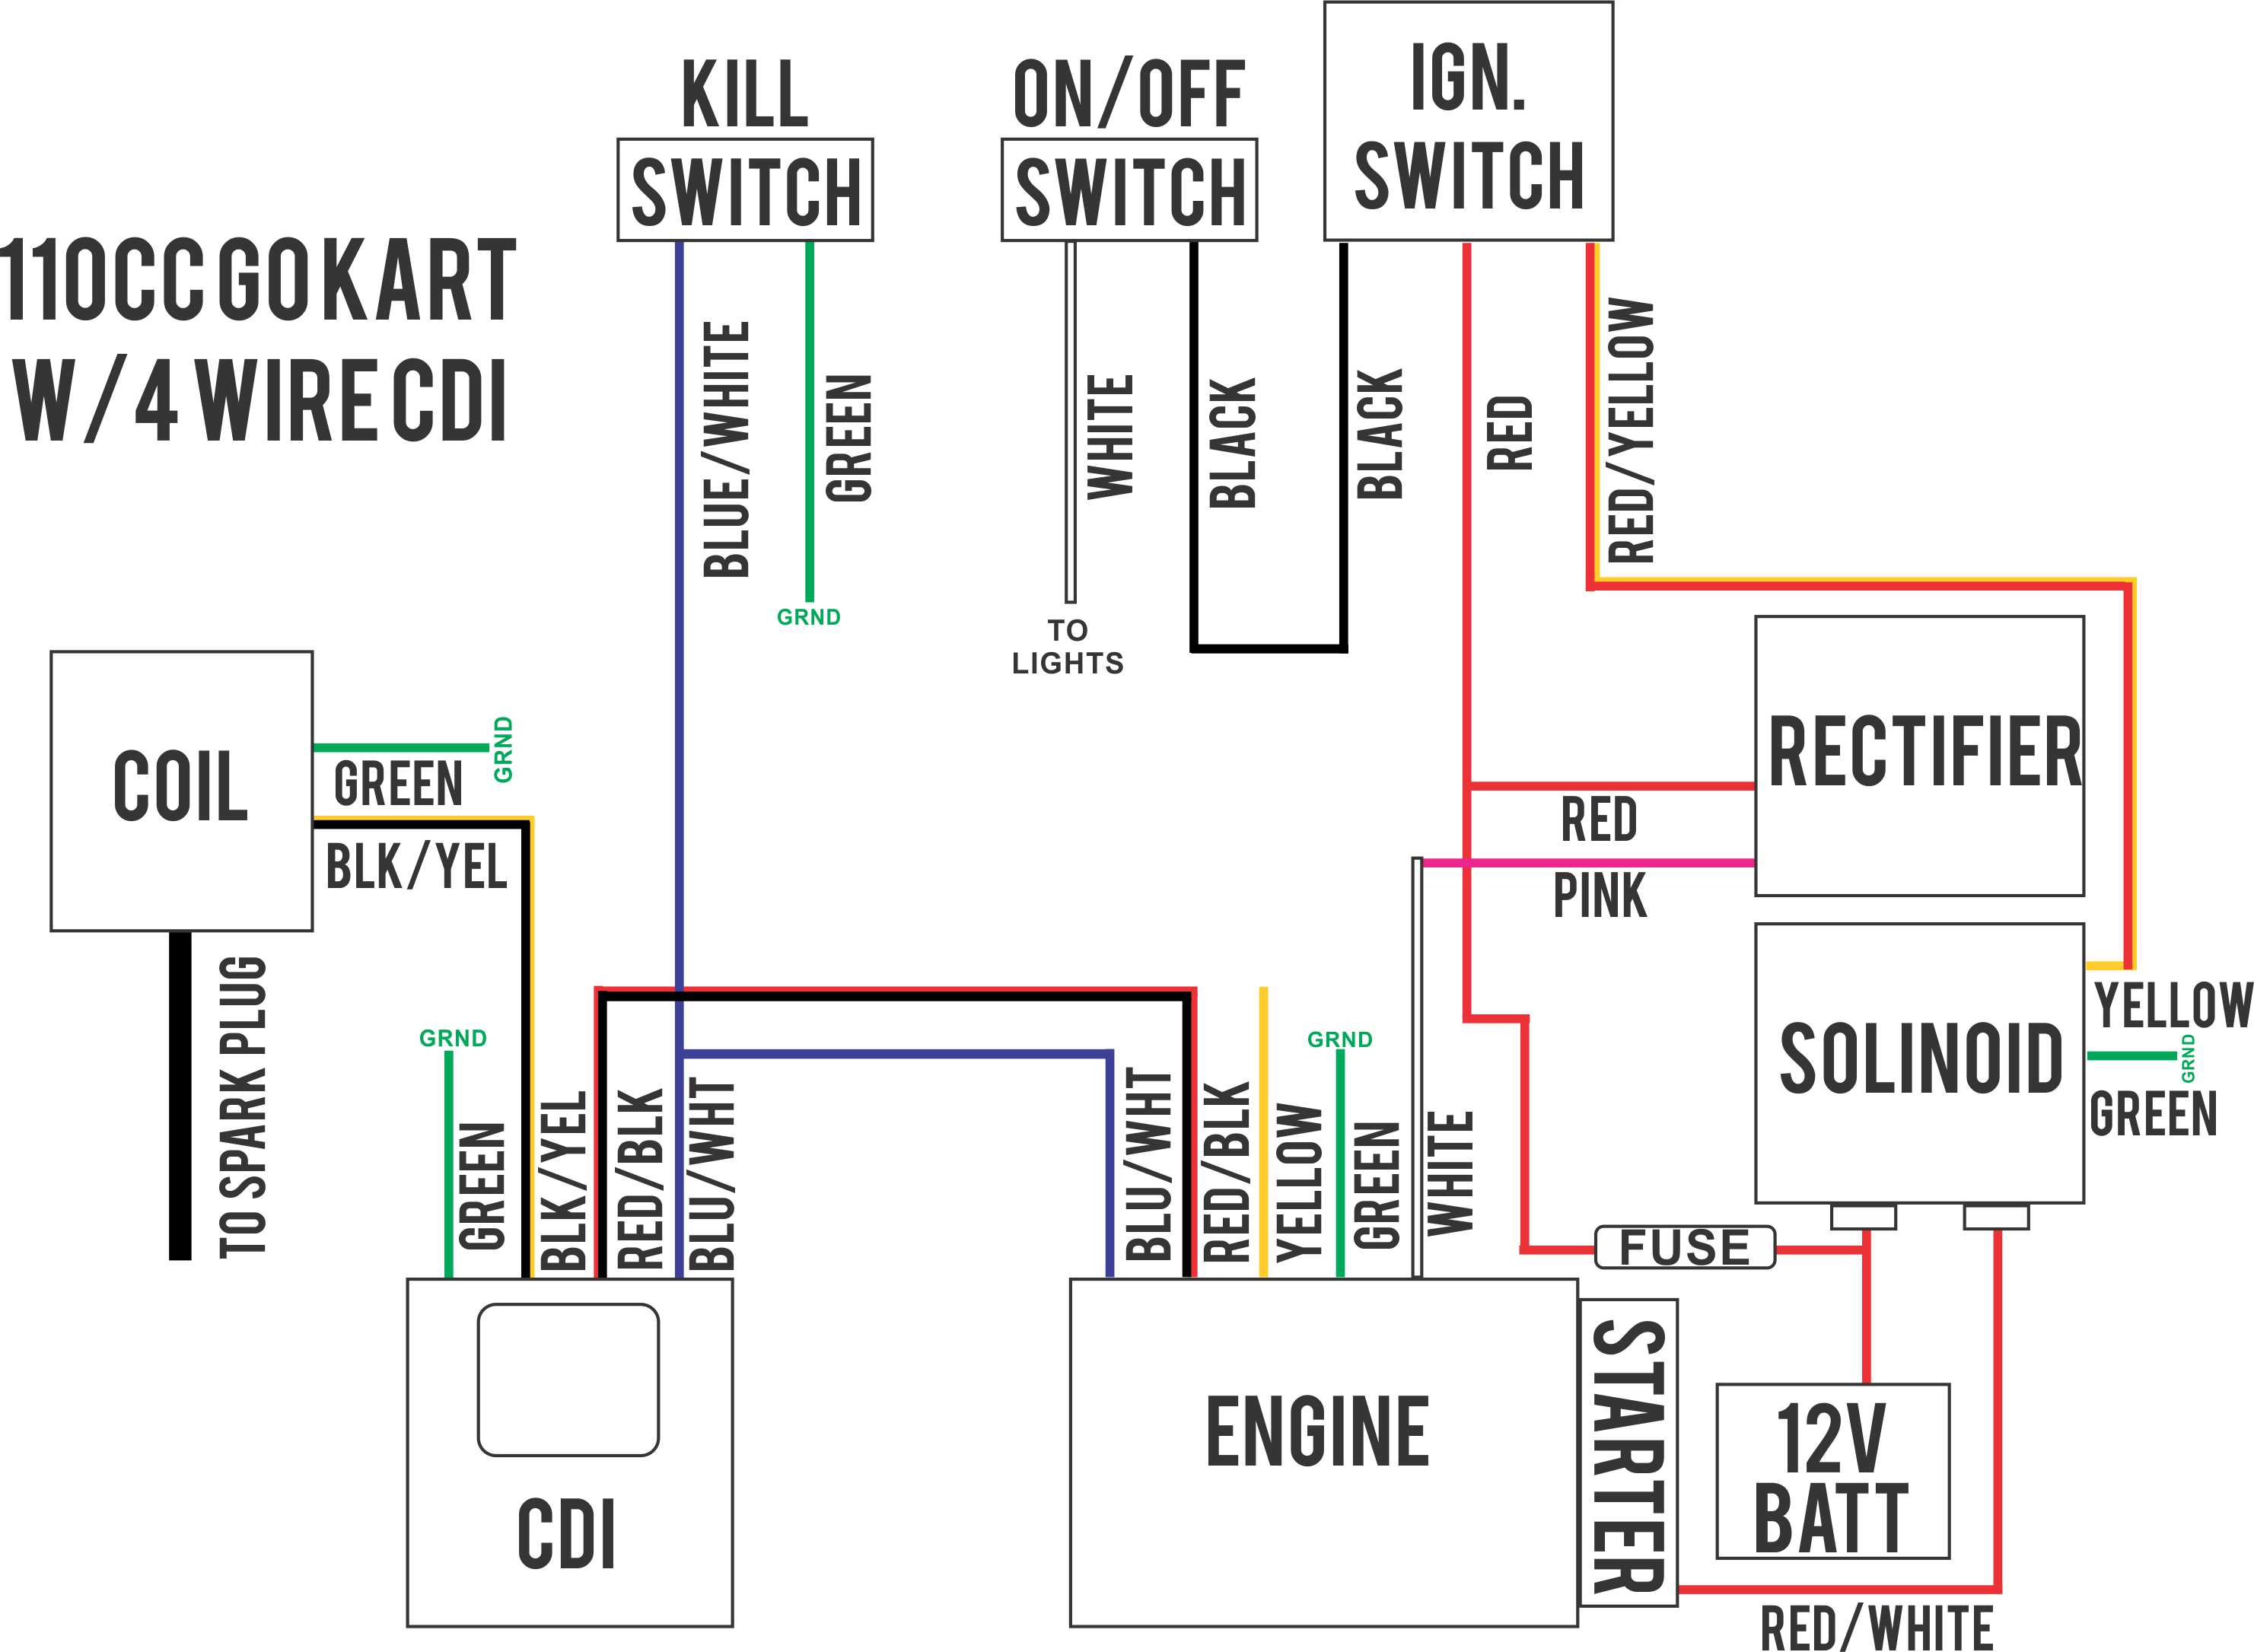 4 Wire Ignition Wiring - Wiring Diagram Data - Motorcycle Ignition Switch Wiring Diagram